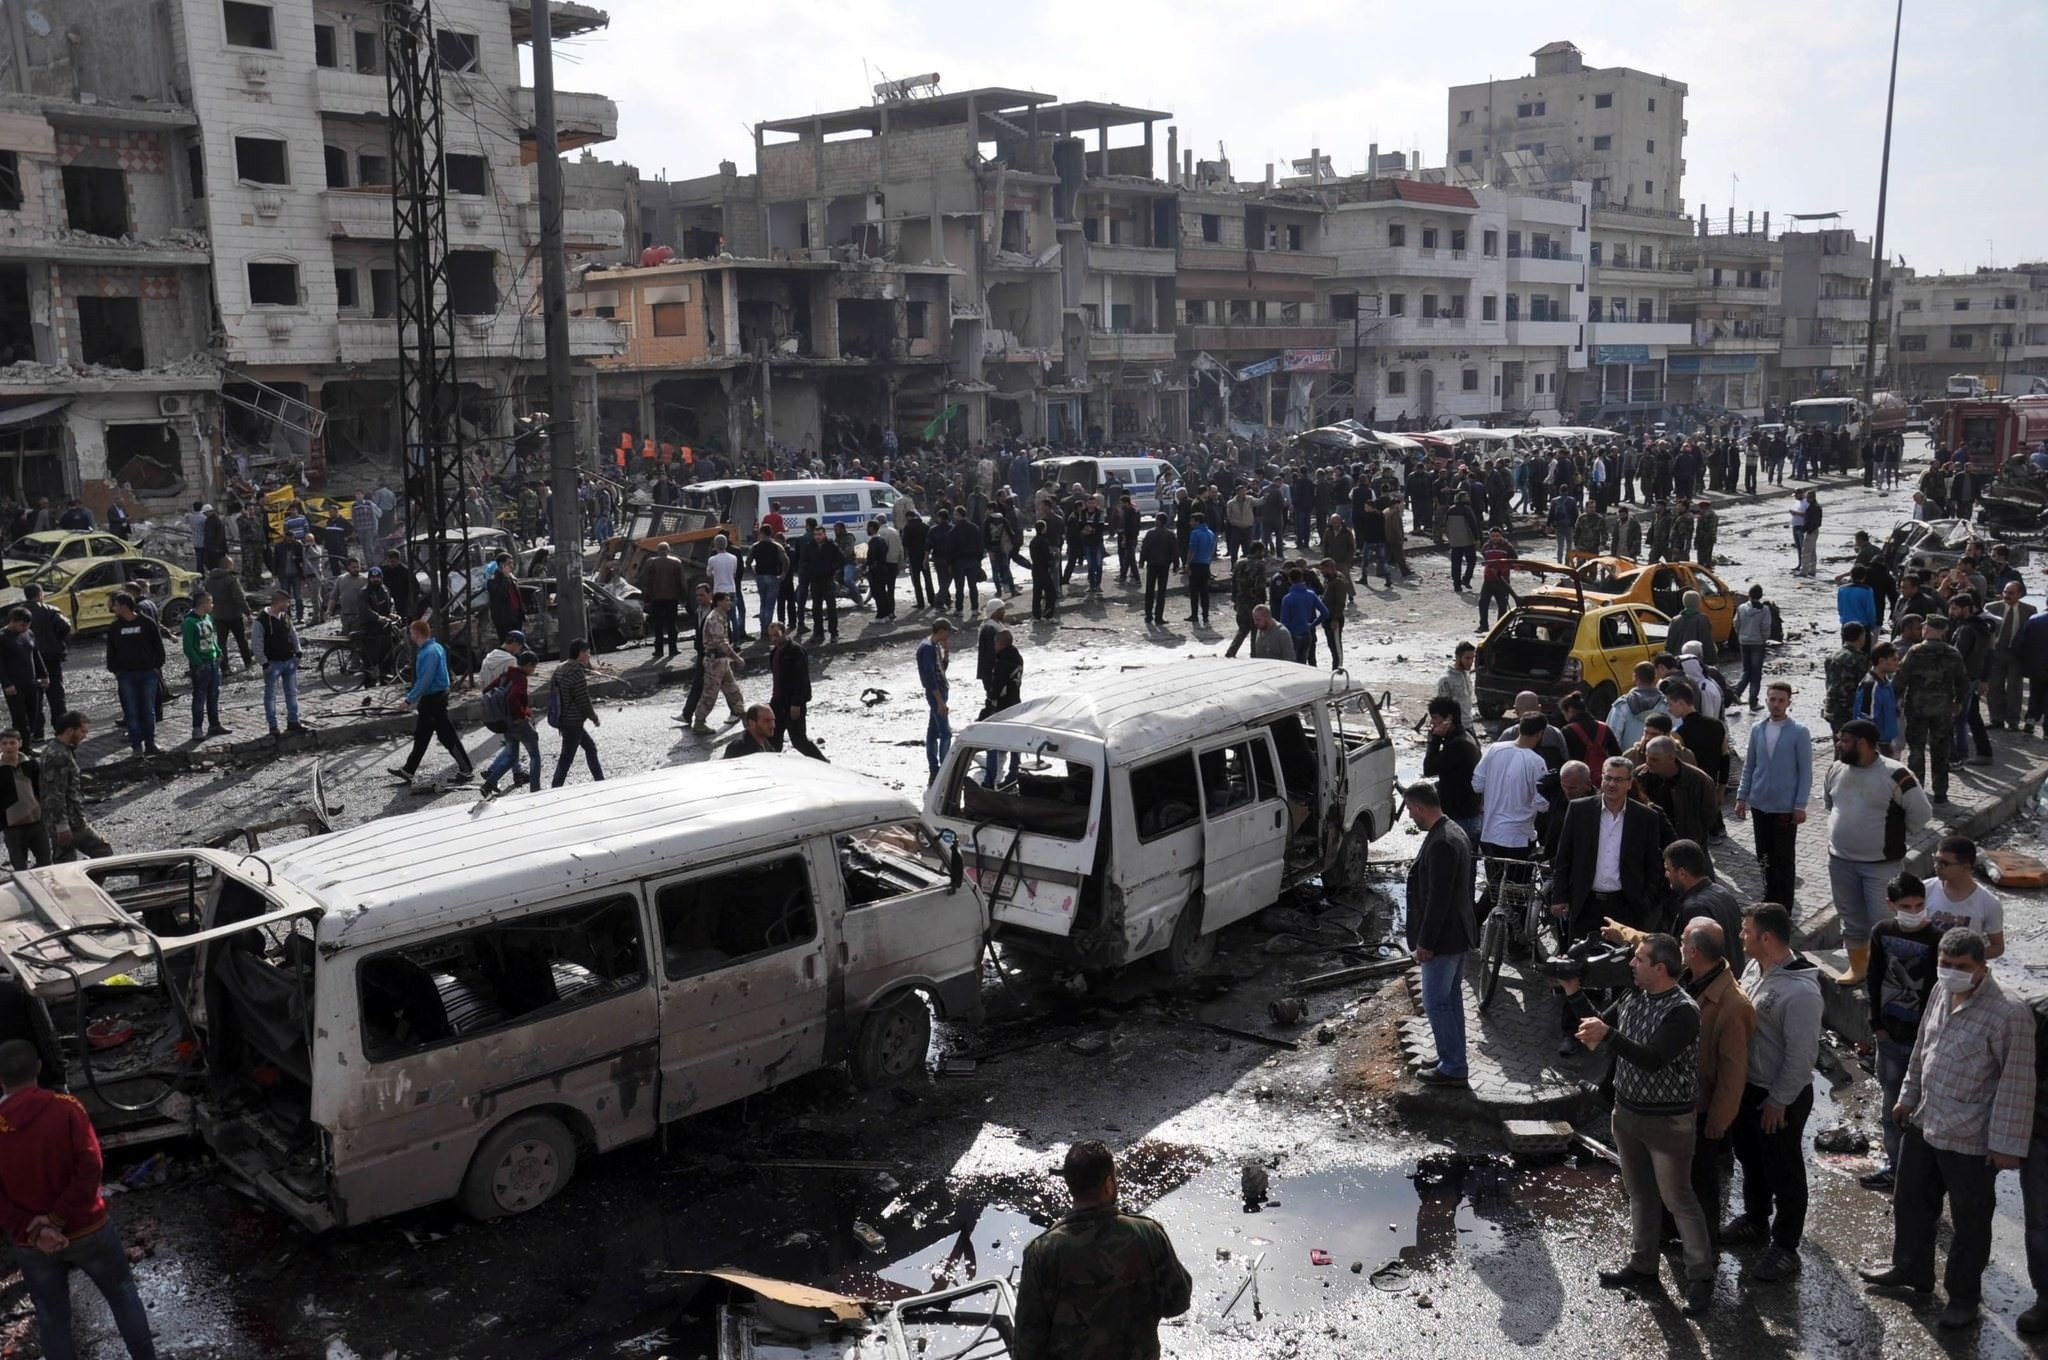 yrians gather at the site of a double car bomb attack in the Al-Zahraa neighbourhood of the central Syrian city of Homs on February 21, 2016. (AFP Photo)